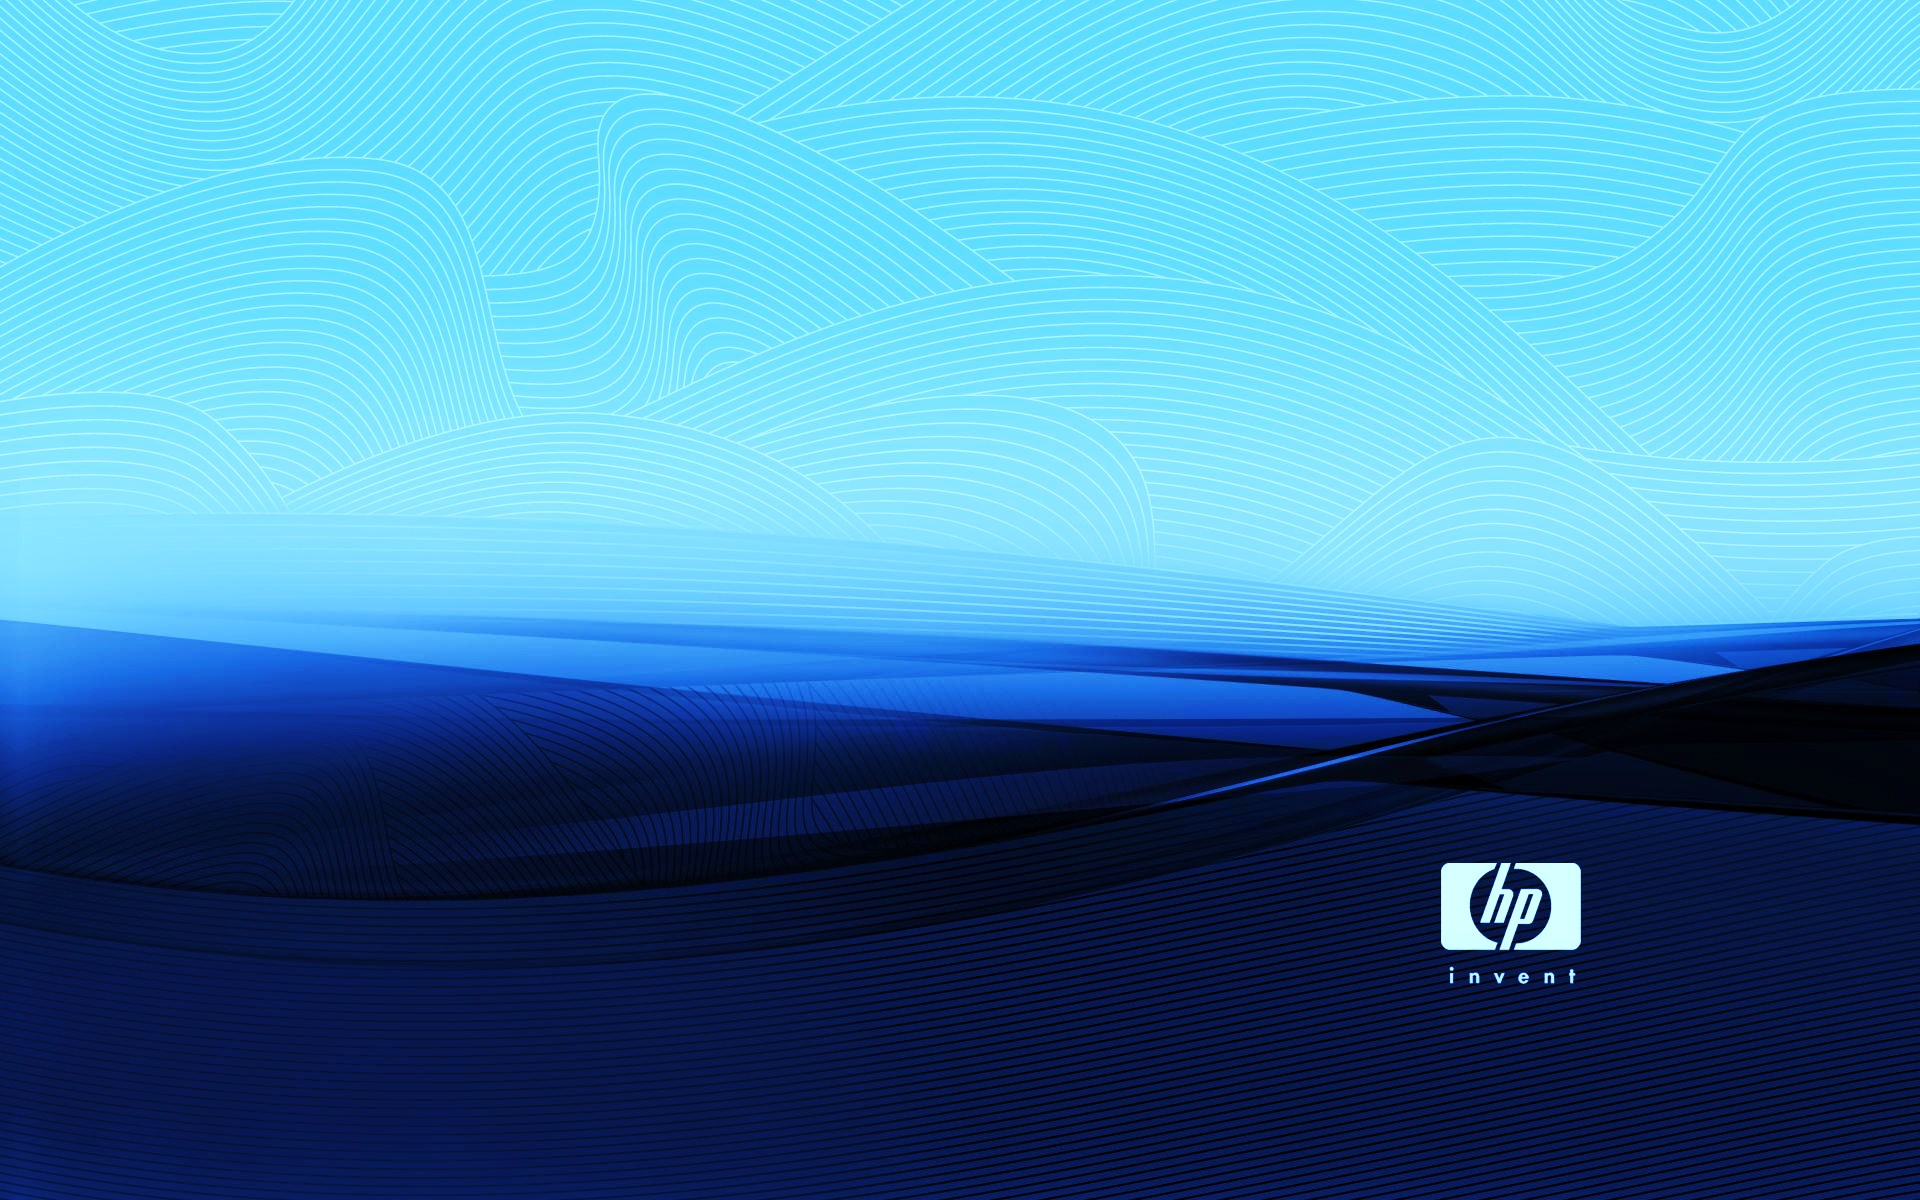 hp-invent_wallpapers_5625_1920.jpg